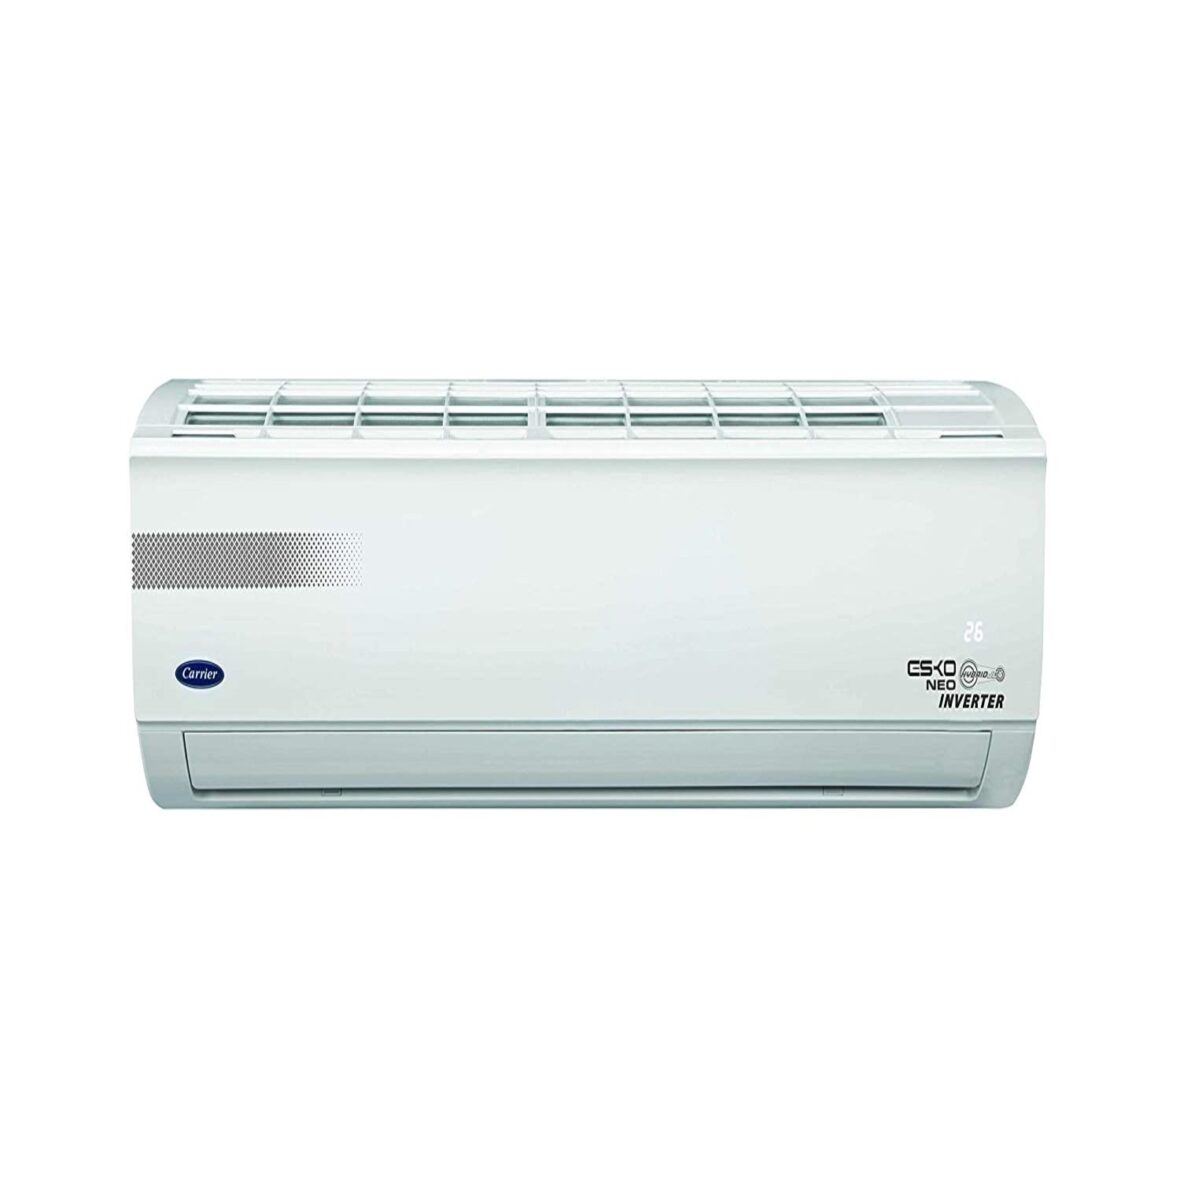 These enable this product to be included in the list of best air conditioners in India. Let's take a look at some notable features of this product.Best 1.5 Ton 5 Star Inverter Split AC India 2021